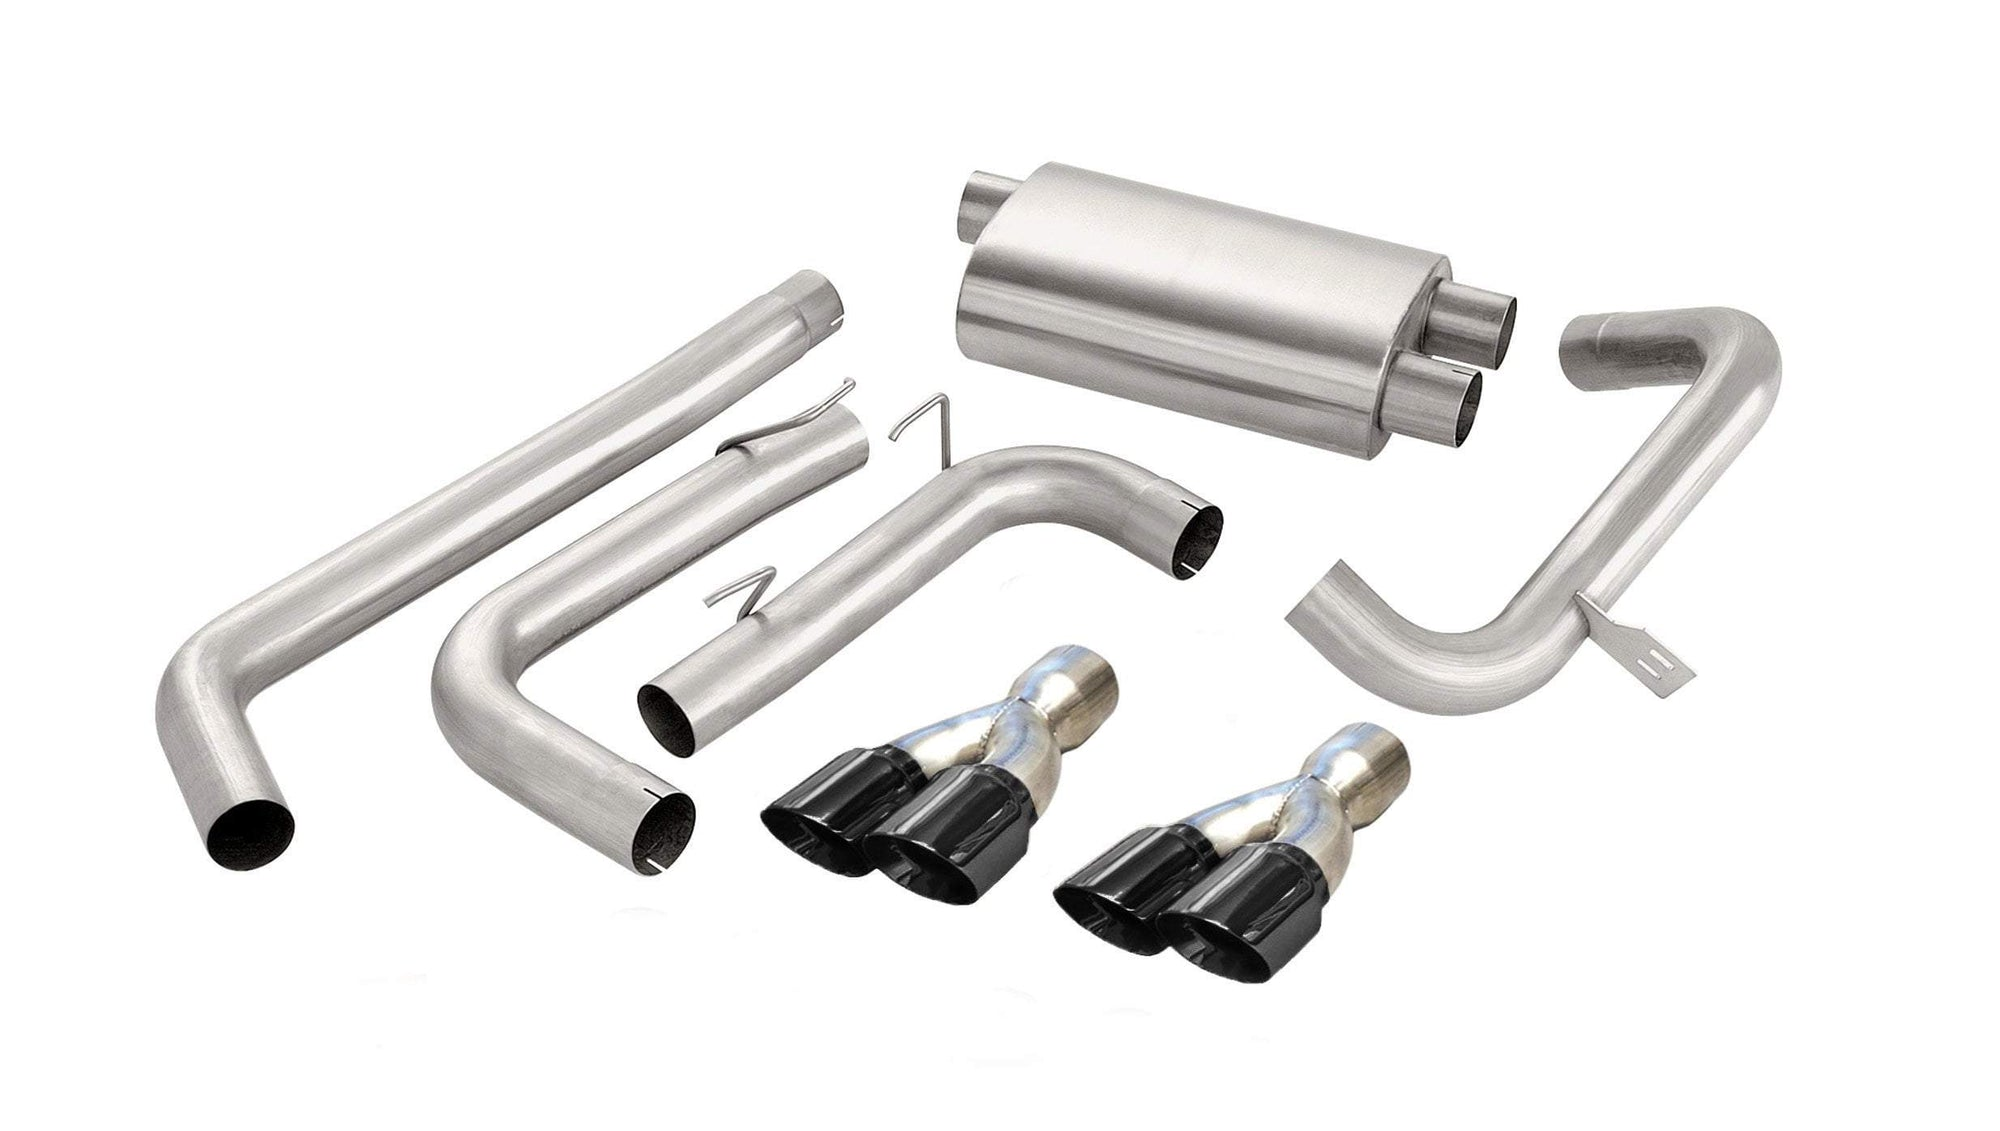 "CORSA PERFORMANCE Cat-Back Exhaust Polished / Sport / Dual Rear - Twin 3.5in 1998-2002 Chevrolet Camaro SS, Z28, Pontiac Firebird 5.7L V8, 3.0"" Dual Rear Exit Cat-Back Exhaust System with Twin 3.5"" Tips (14143) Sport sound Level"